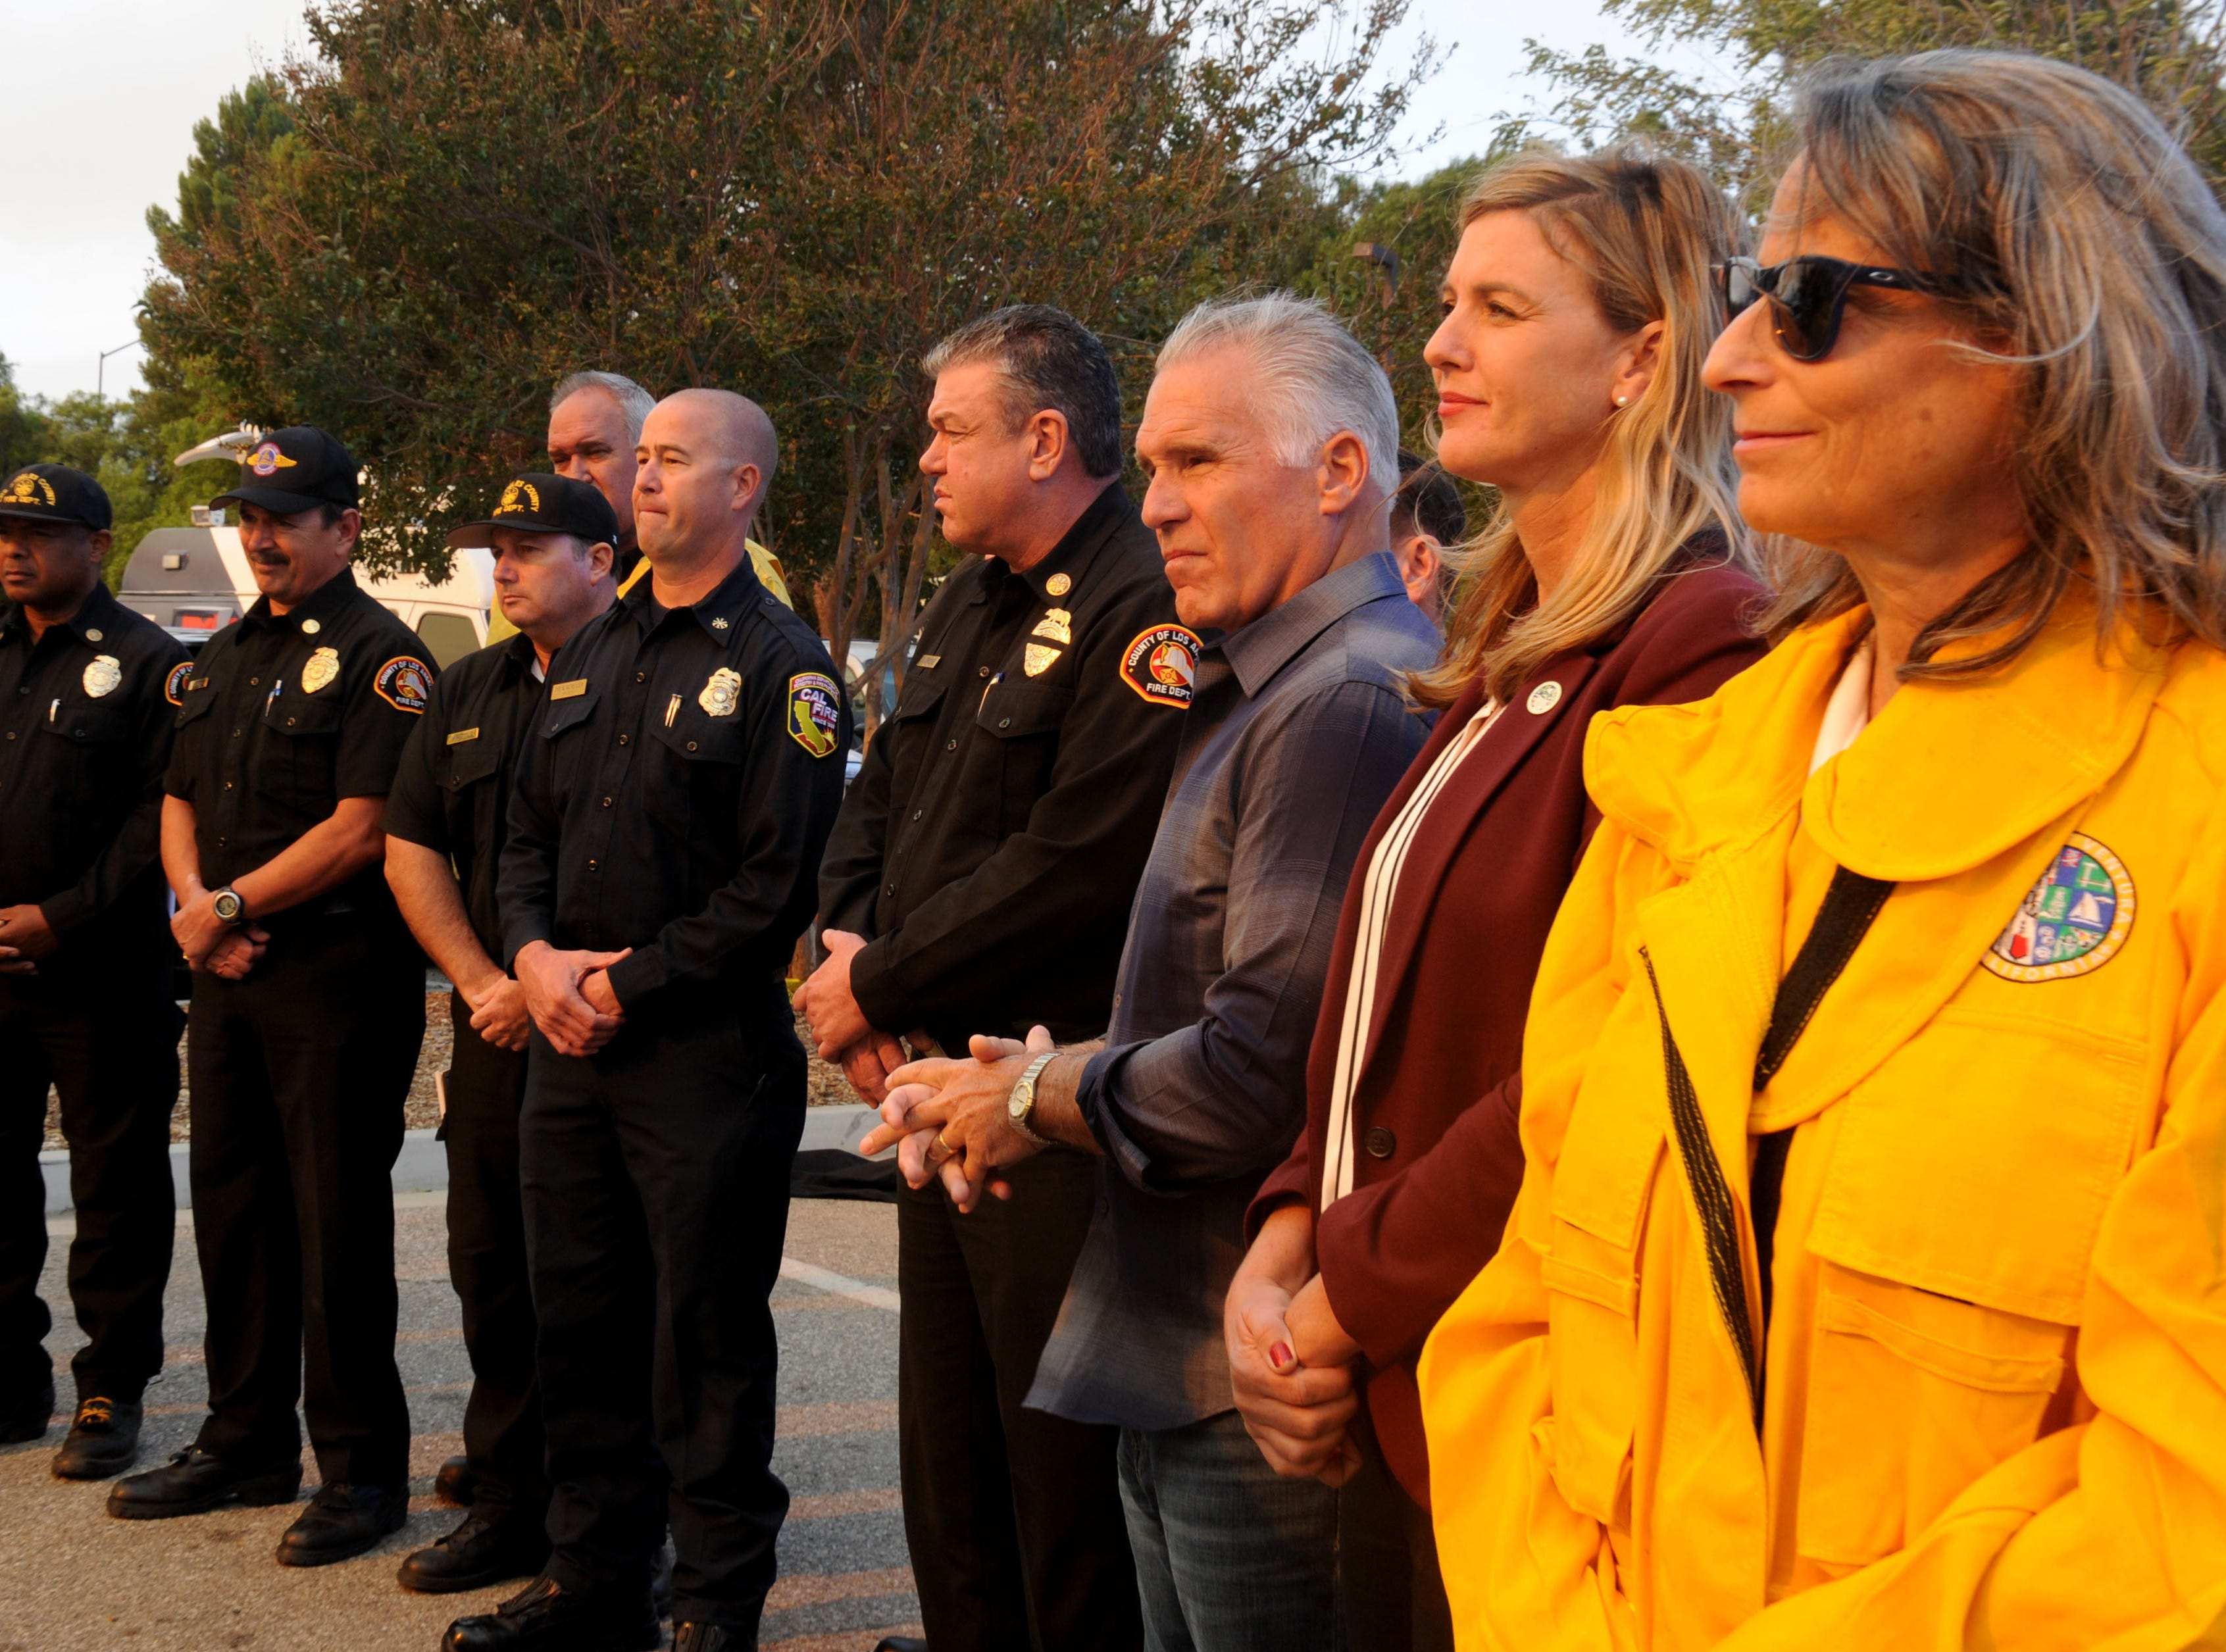 Ventura County Supervisor Peter C. Foy, Supervisor Kelly Long and Supervisor Linda Parks stand during a news  conference at Conejo Creek Park South on Friday morning.